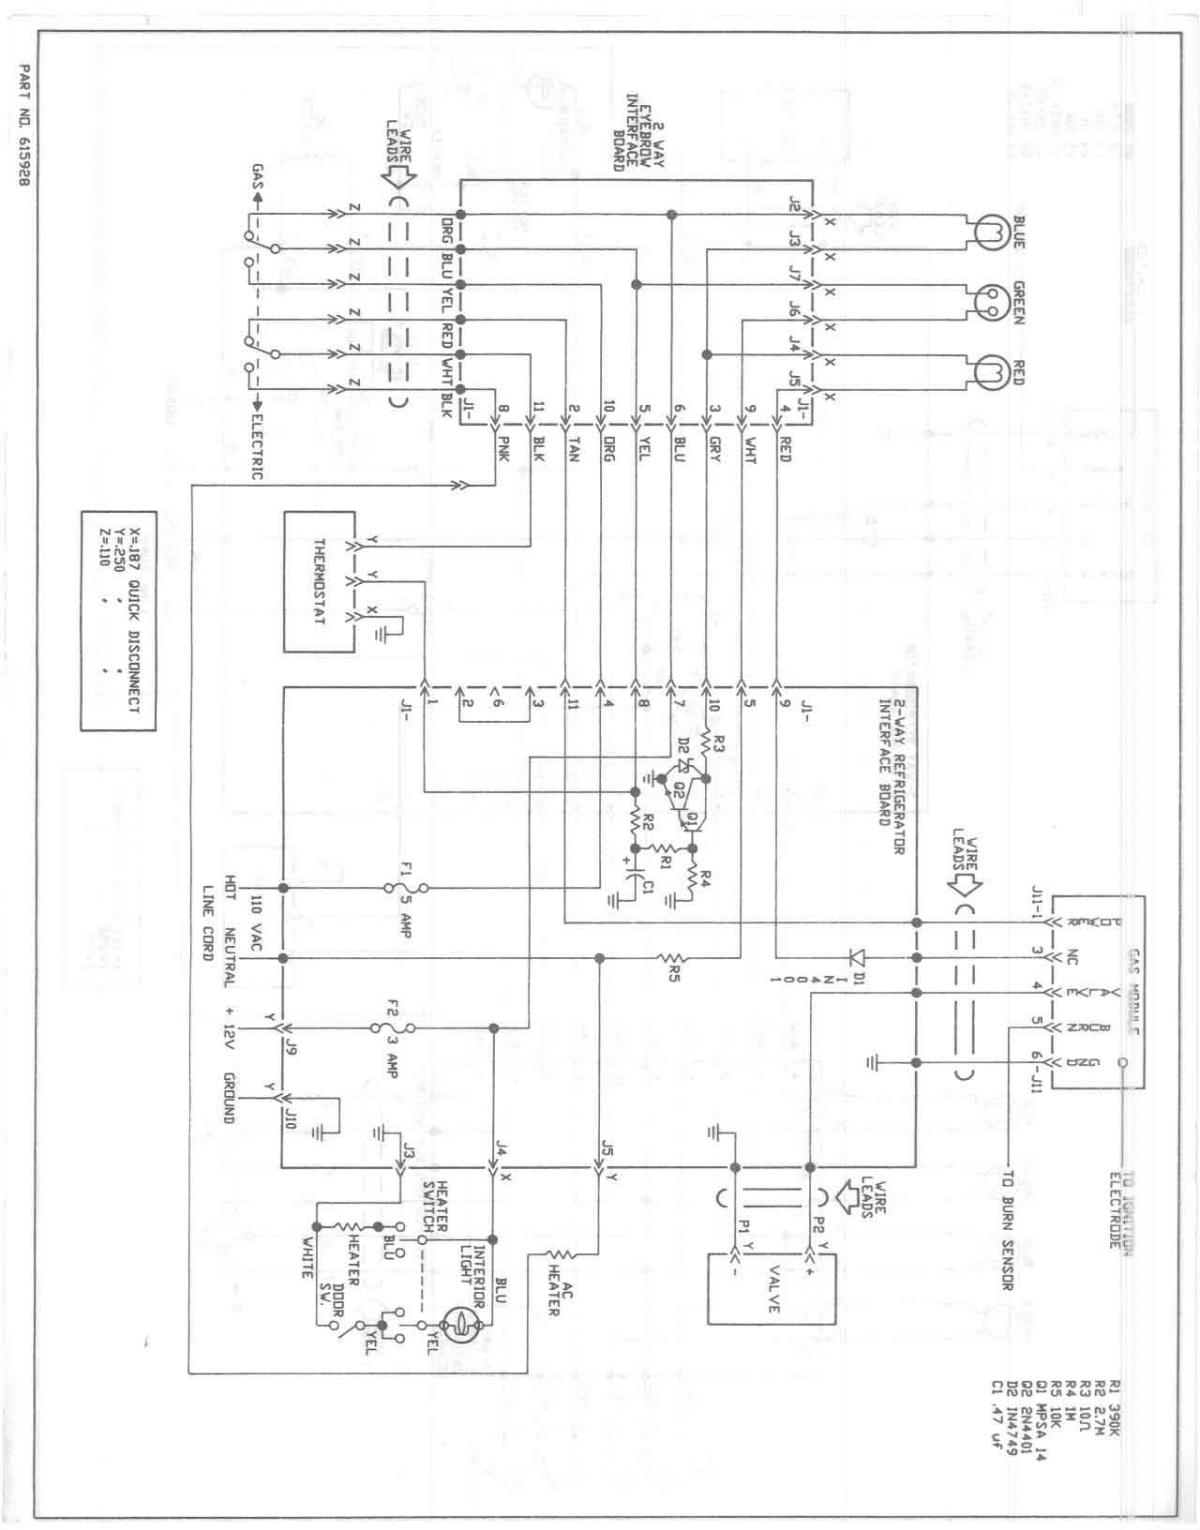 hight resolution of norcold rv refrigerator wiring diagram norcold 12 dometic rv fridge wiring diagram norcold wire colors to colder